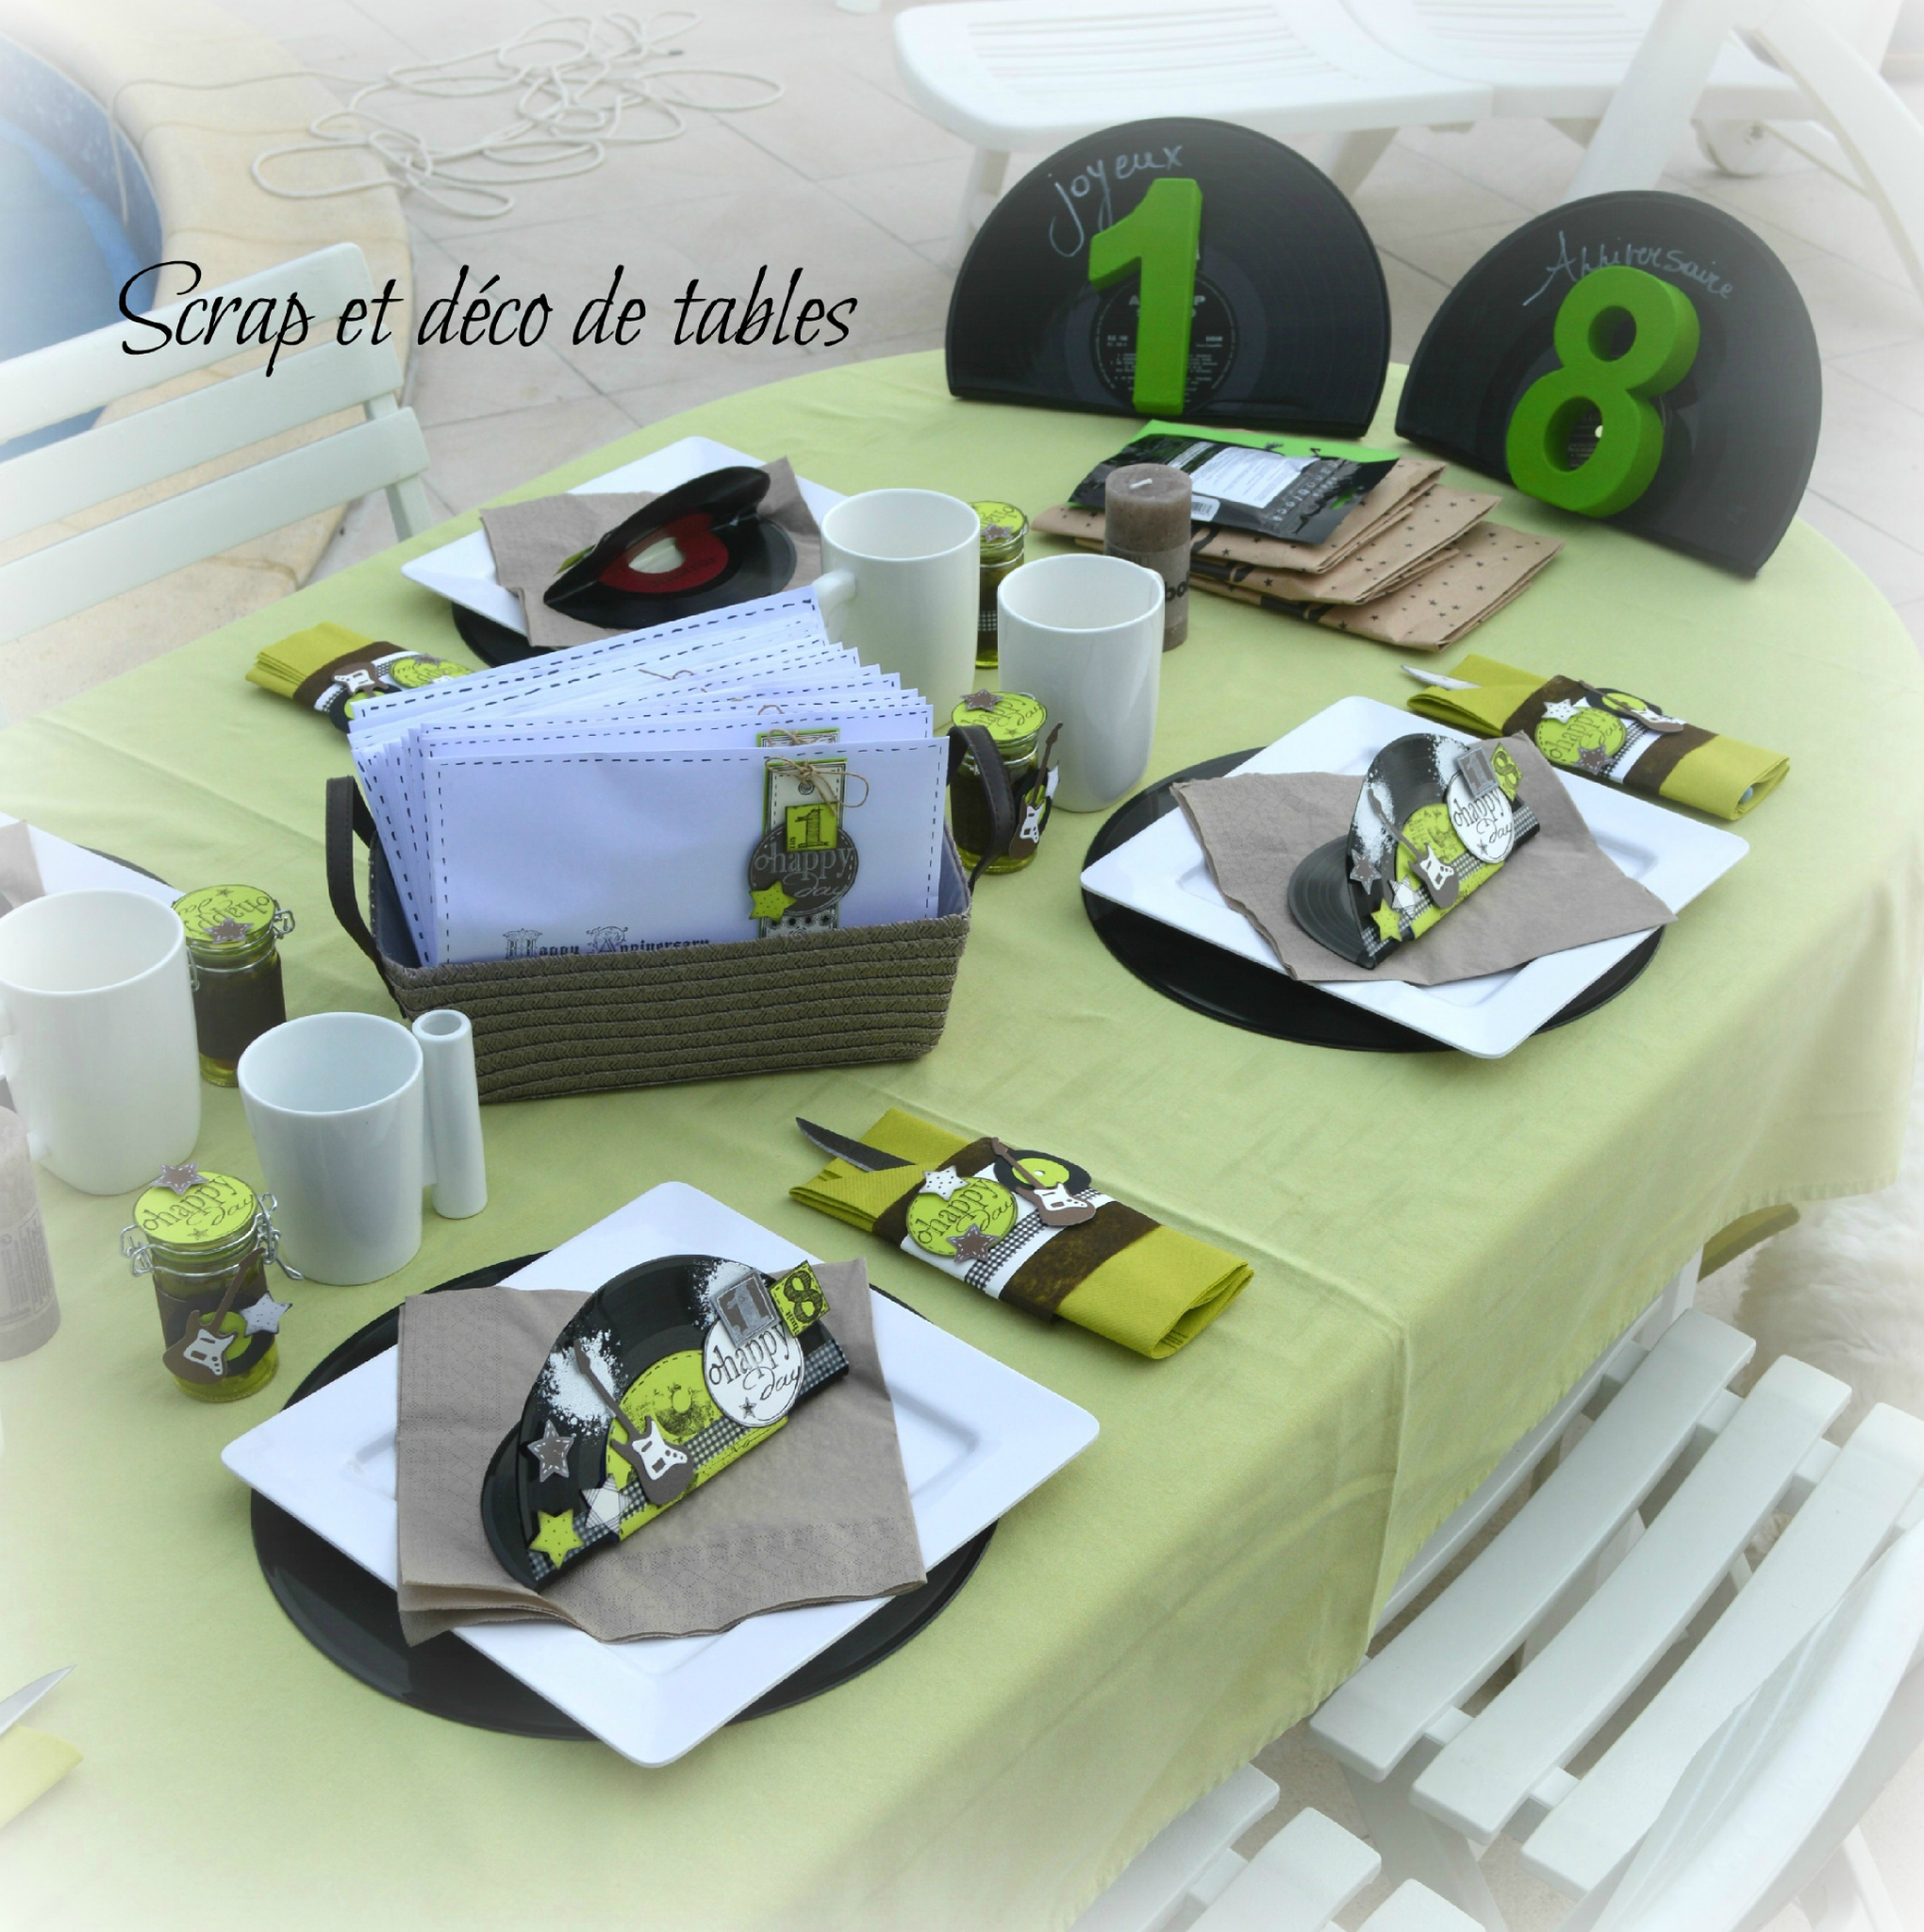 deco de table pour les 18 ans de thomas scrap et d co de tables. Black Bedroom Furniture Sets. Home Design Ideas